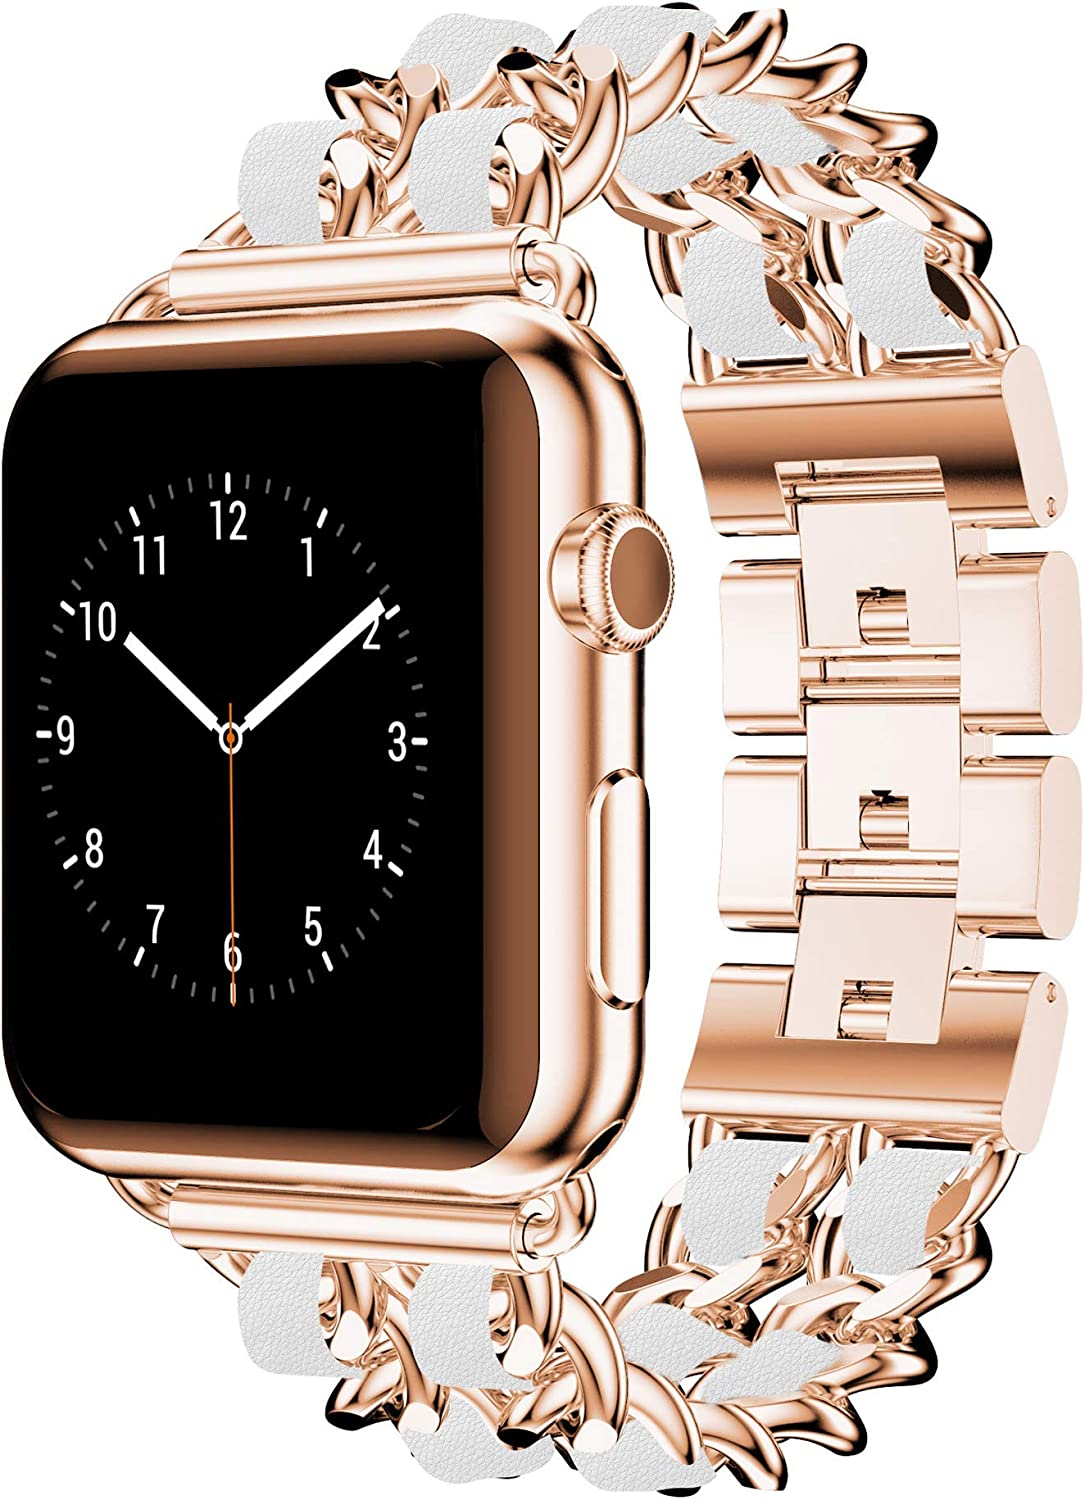 DamonLight Compatible for Apple Watch Band 42mm Women, Jewelry Bracelet Rose Gold Dressy Bling Wristband 44mm iWatch Series 6 5 4 3 2 1 SE